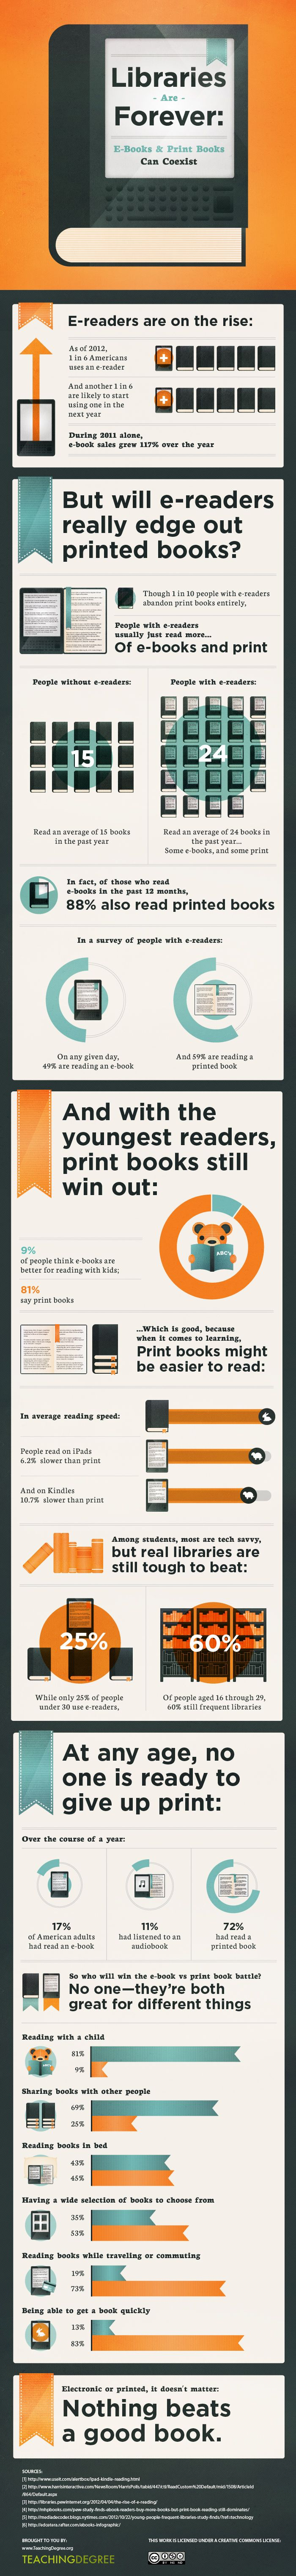 Lovers Of Ebooks And Print Books Need Librarians (infographic)